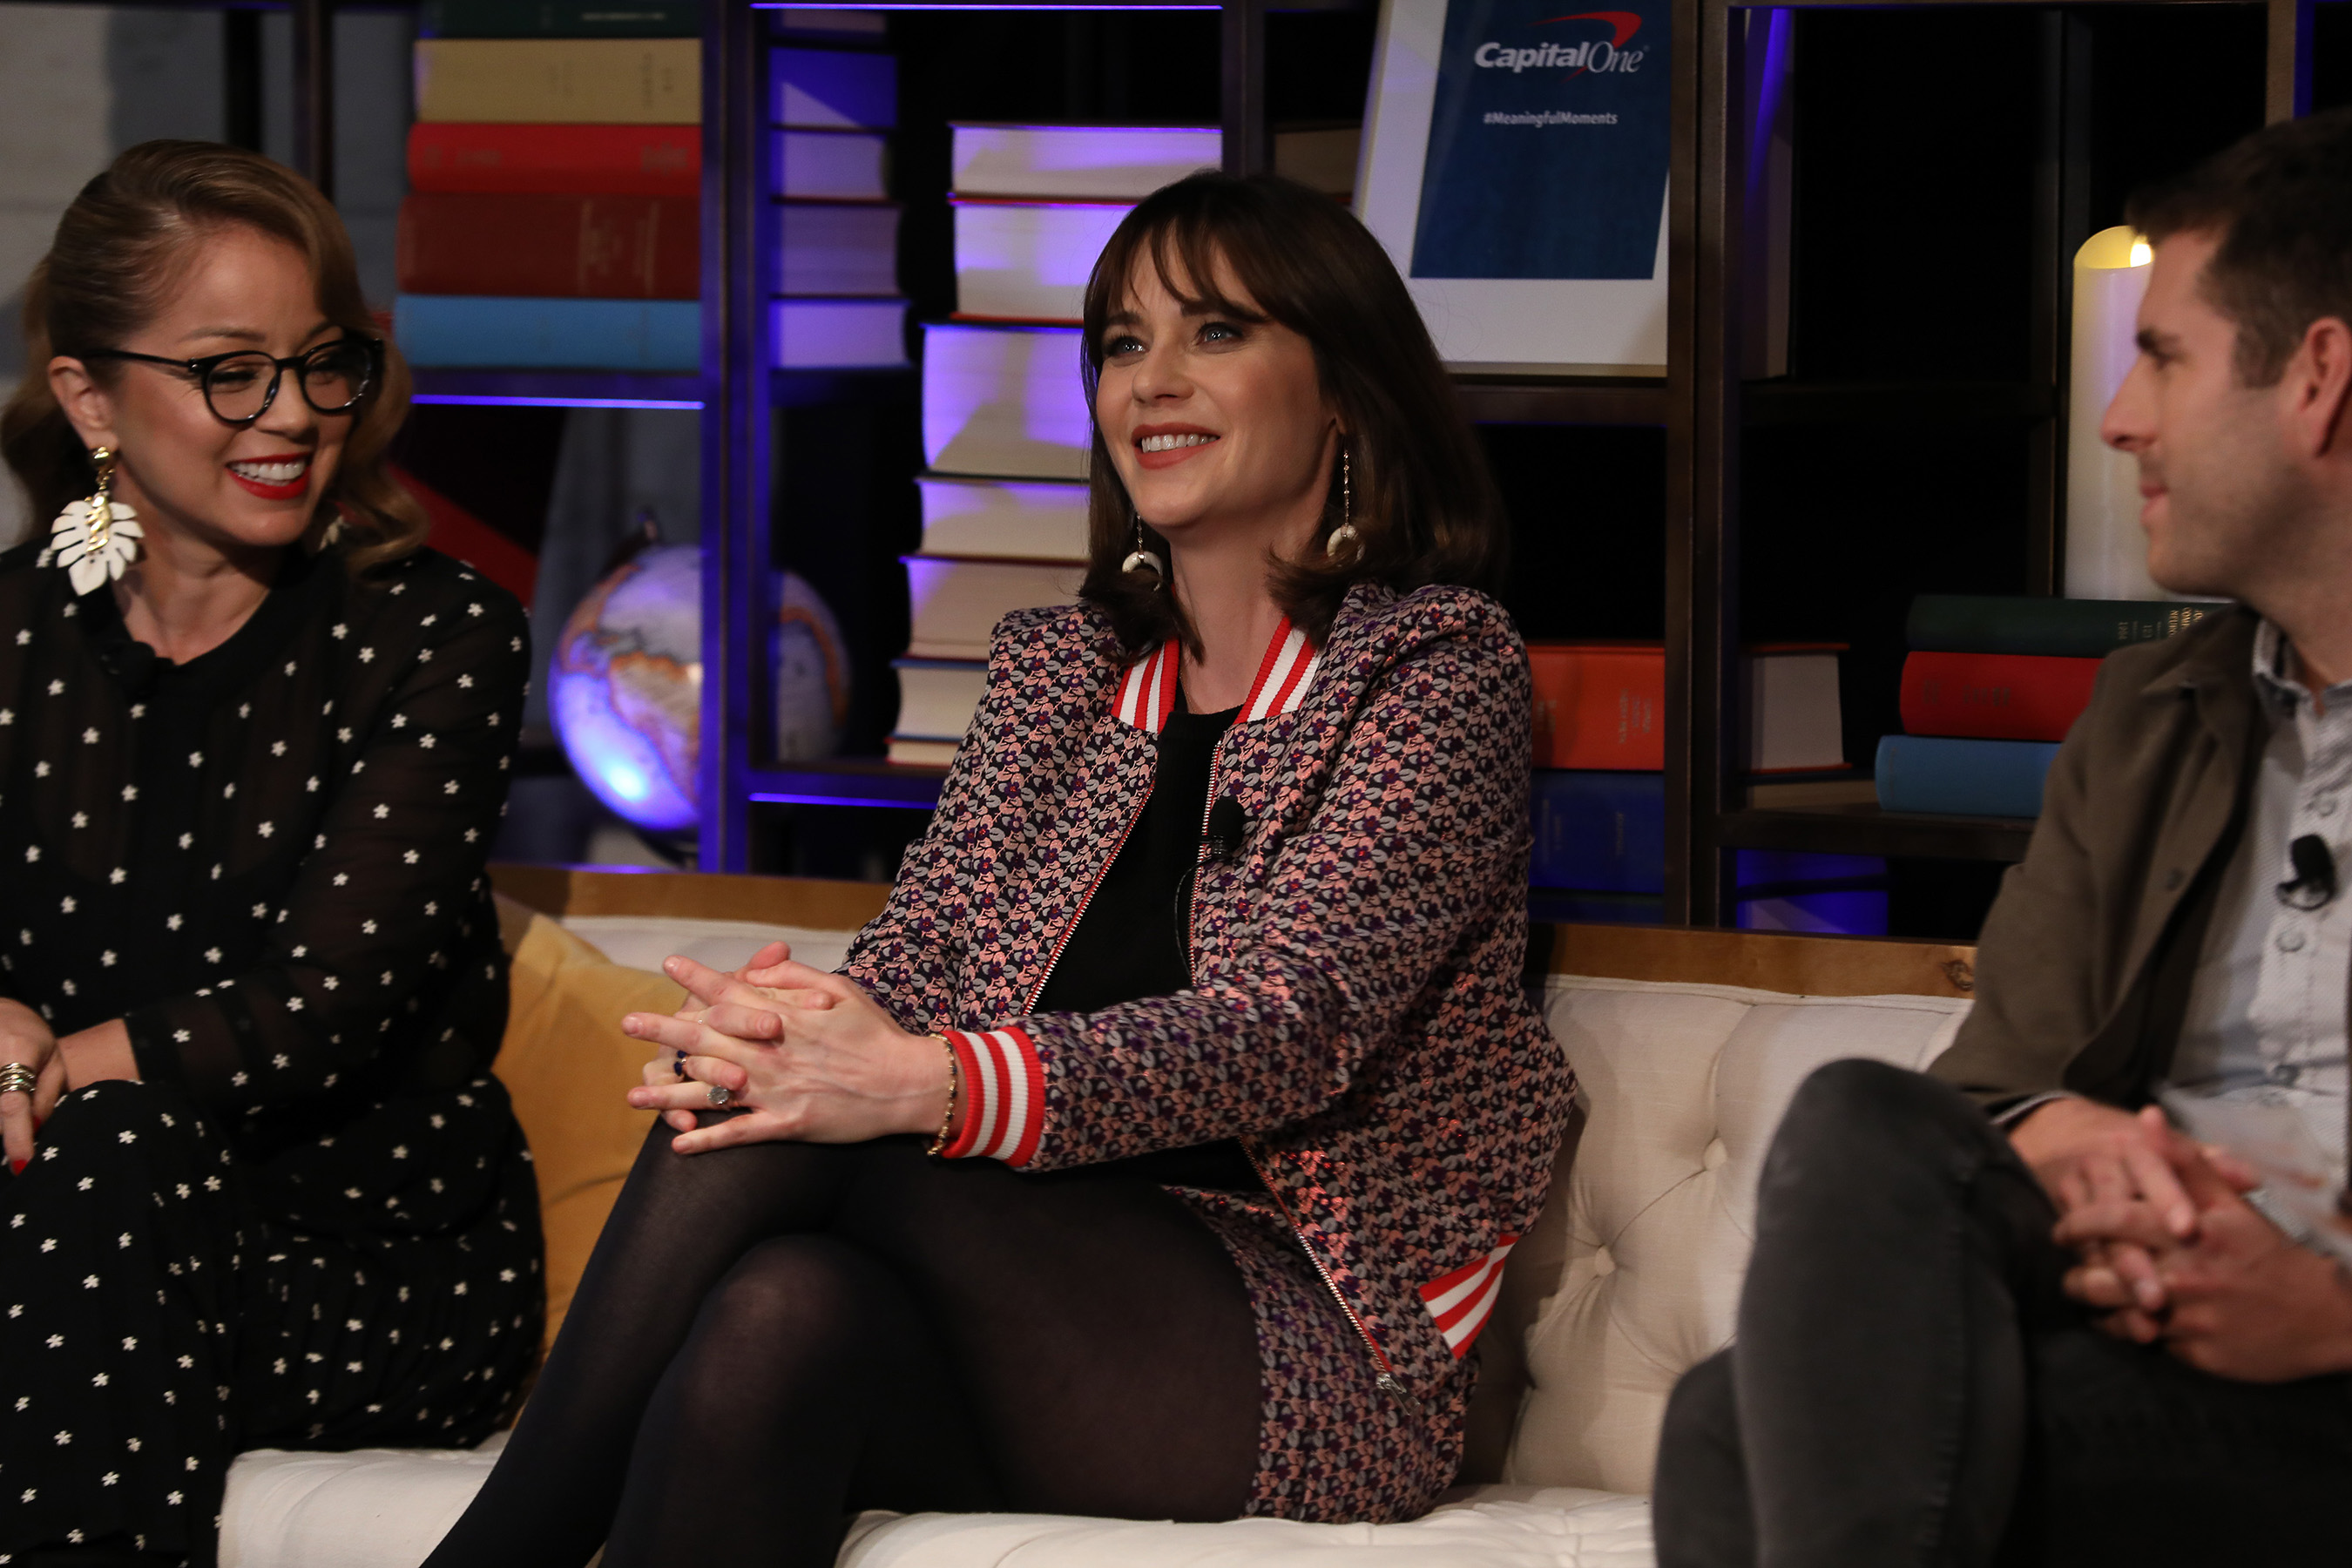 Zooey Deschanel shares her passion for travel at the launch event for the Purpose Project by Capital One on Wednesday, October 24, 2018 in New York. (Mark Von Holden/AP Images for Capital One)